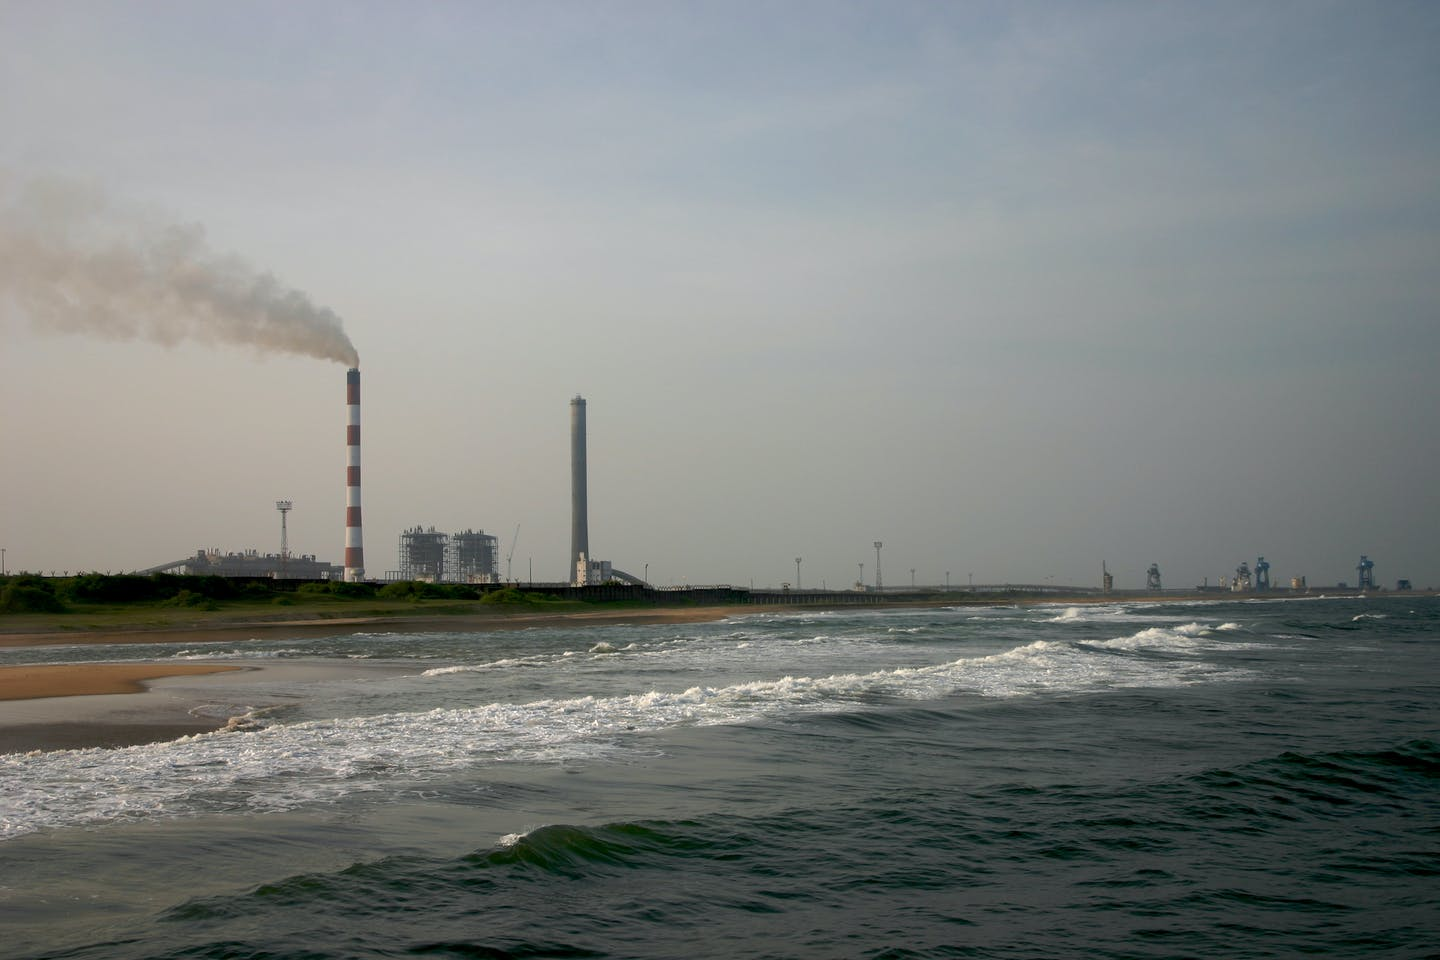 north chennai thermal power plant